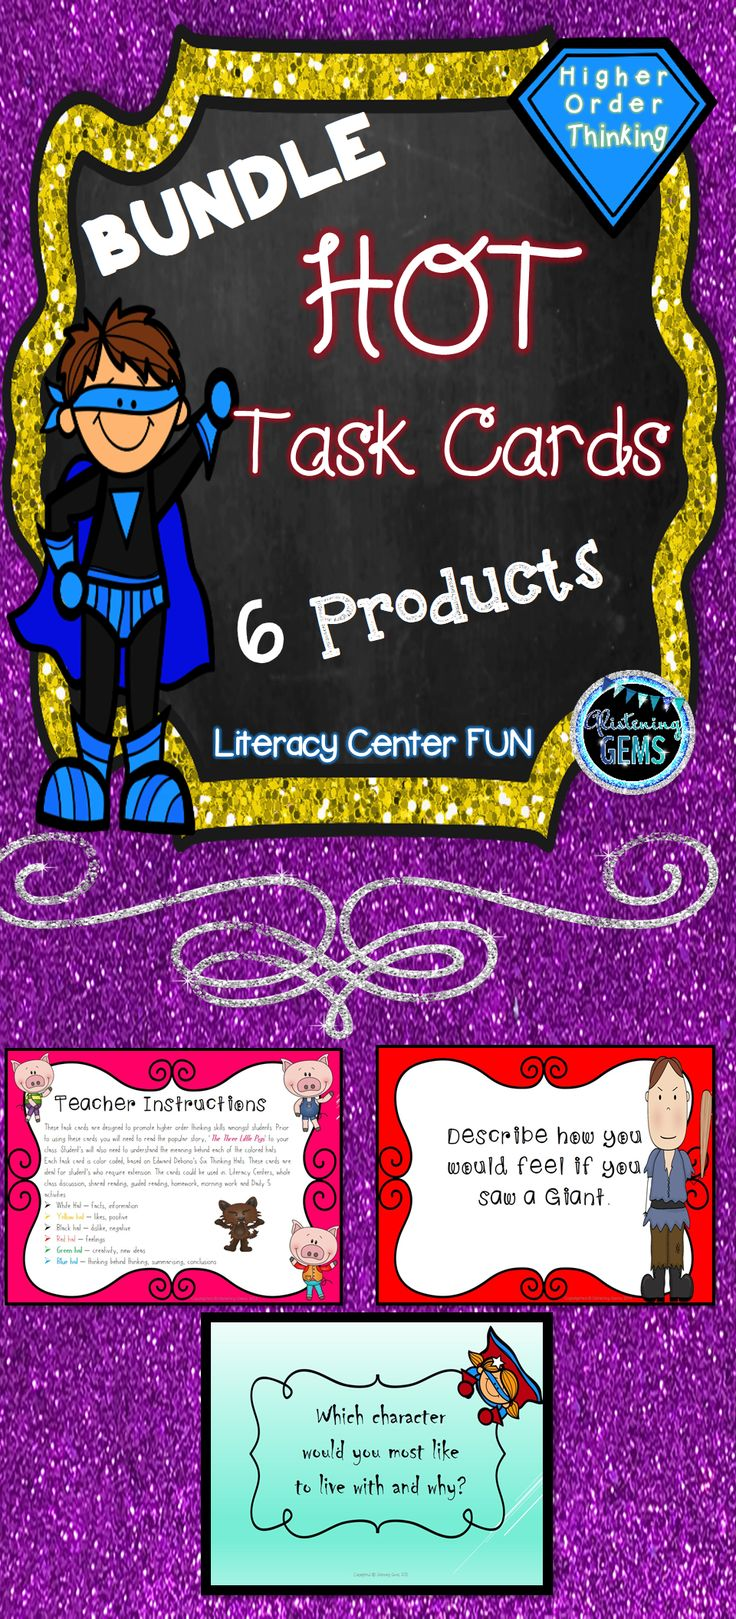 HOT Task Card Bundle - Plenty of task cards to promote higher order thinking skills and critical thinking.